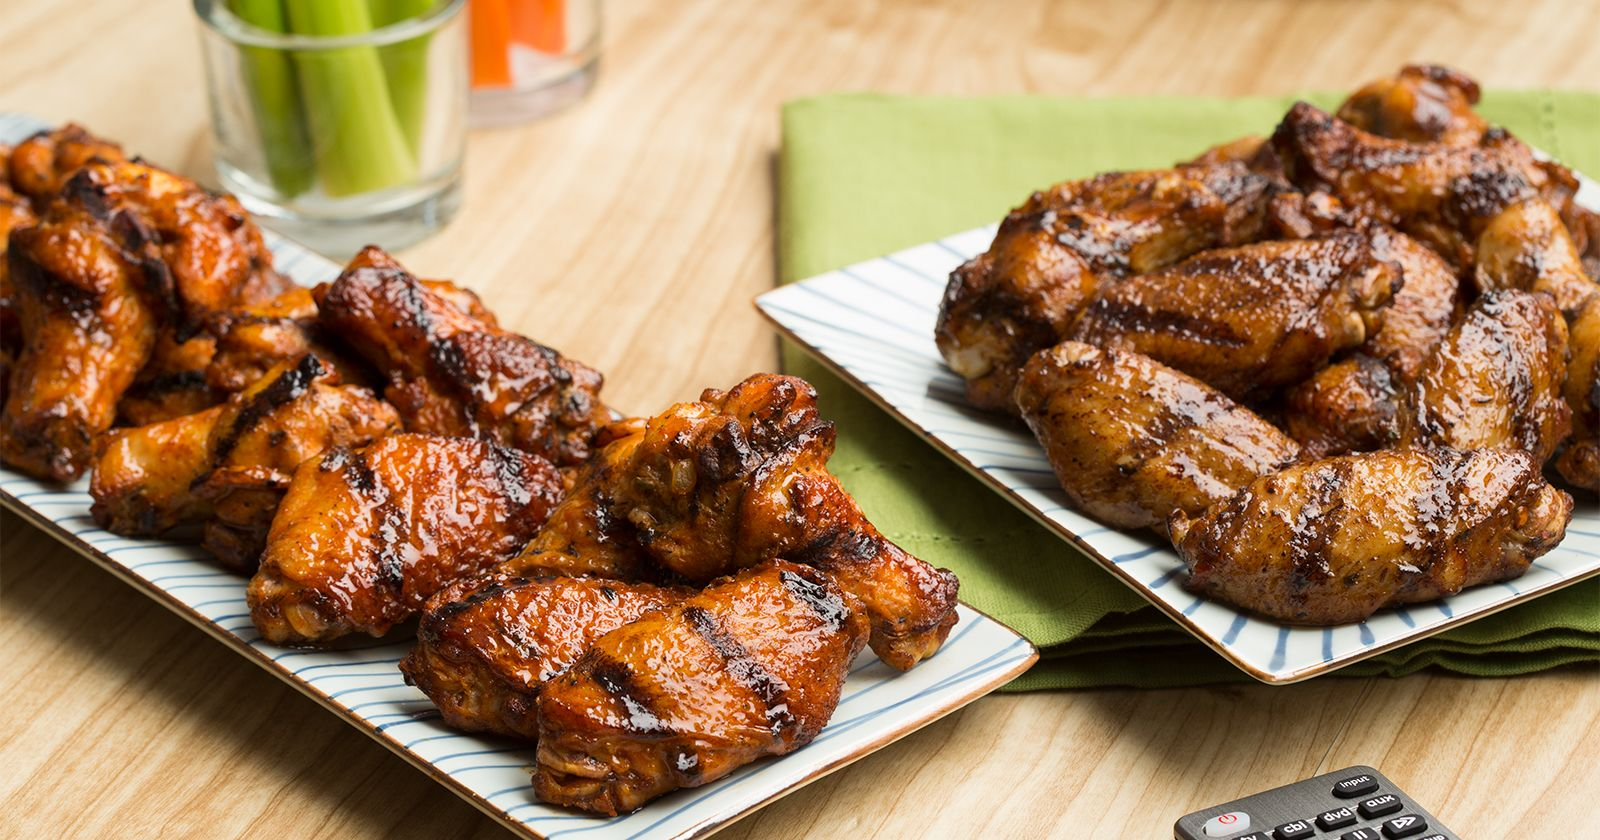 cooked perfect maple sriracha and zesty herbs and spice fire grilled chicken wings